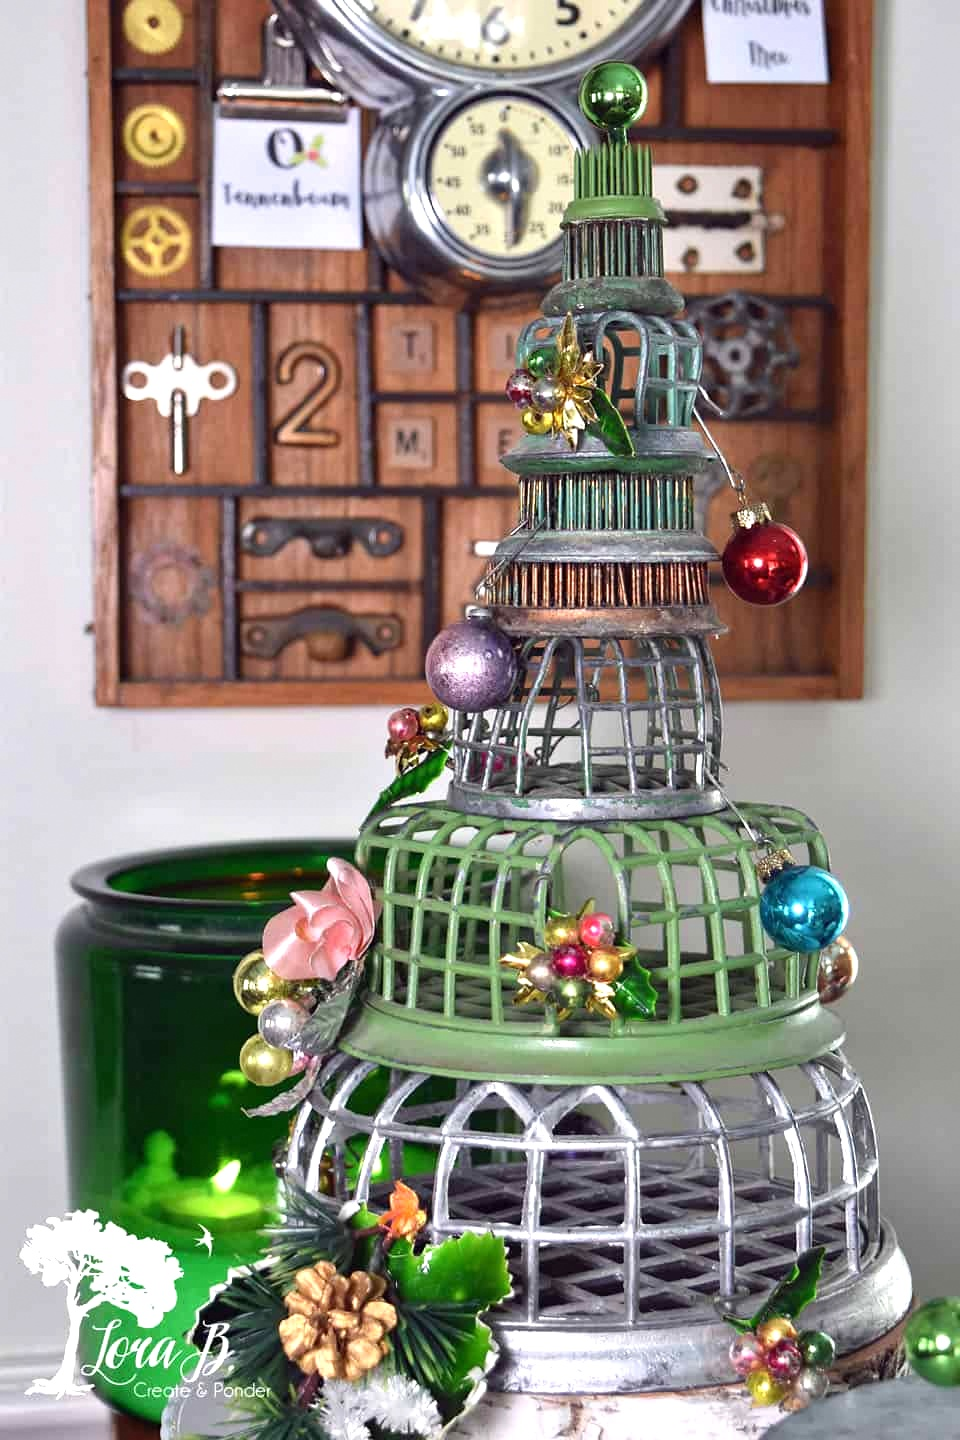 Vintage flower frog Christmas tree by Lora B, featured on Funky Junk Interiors